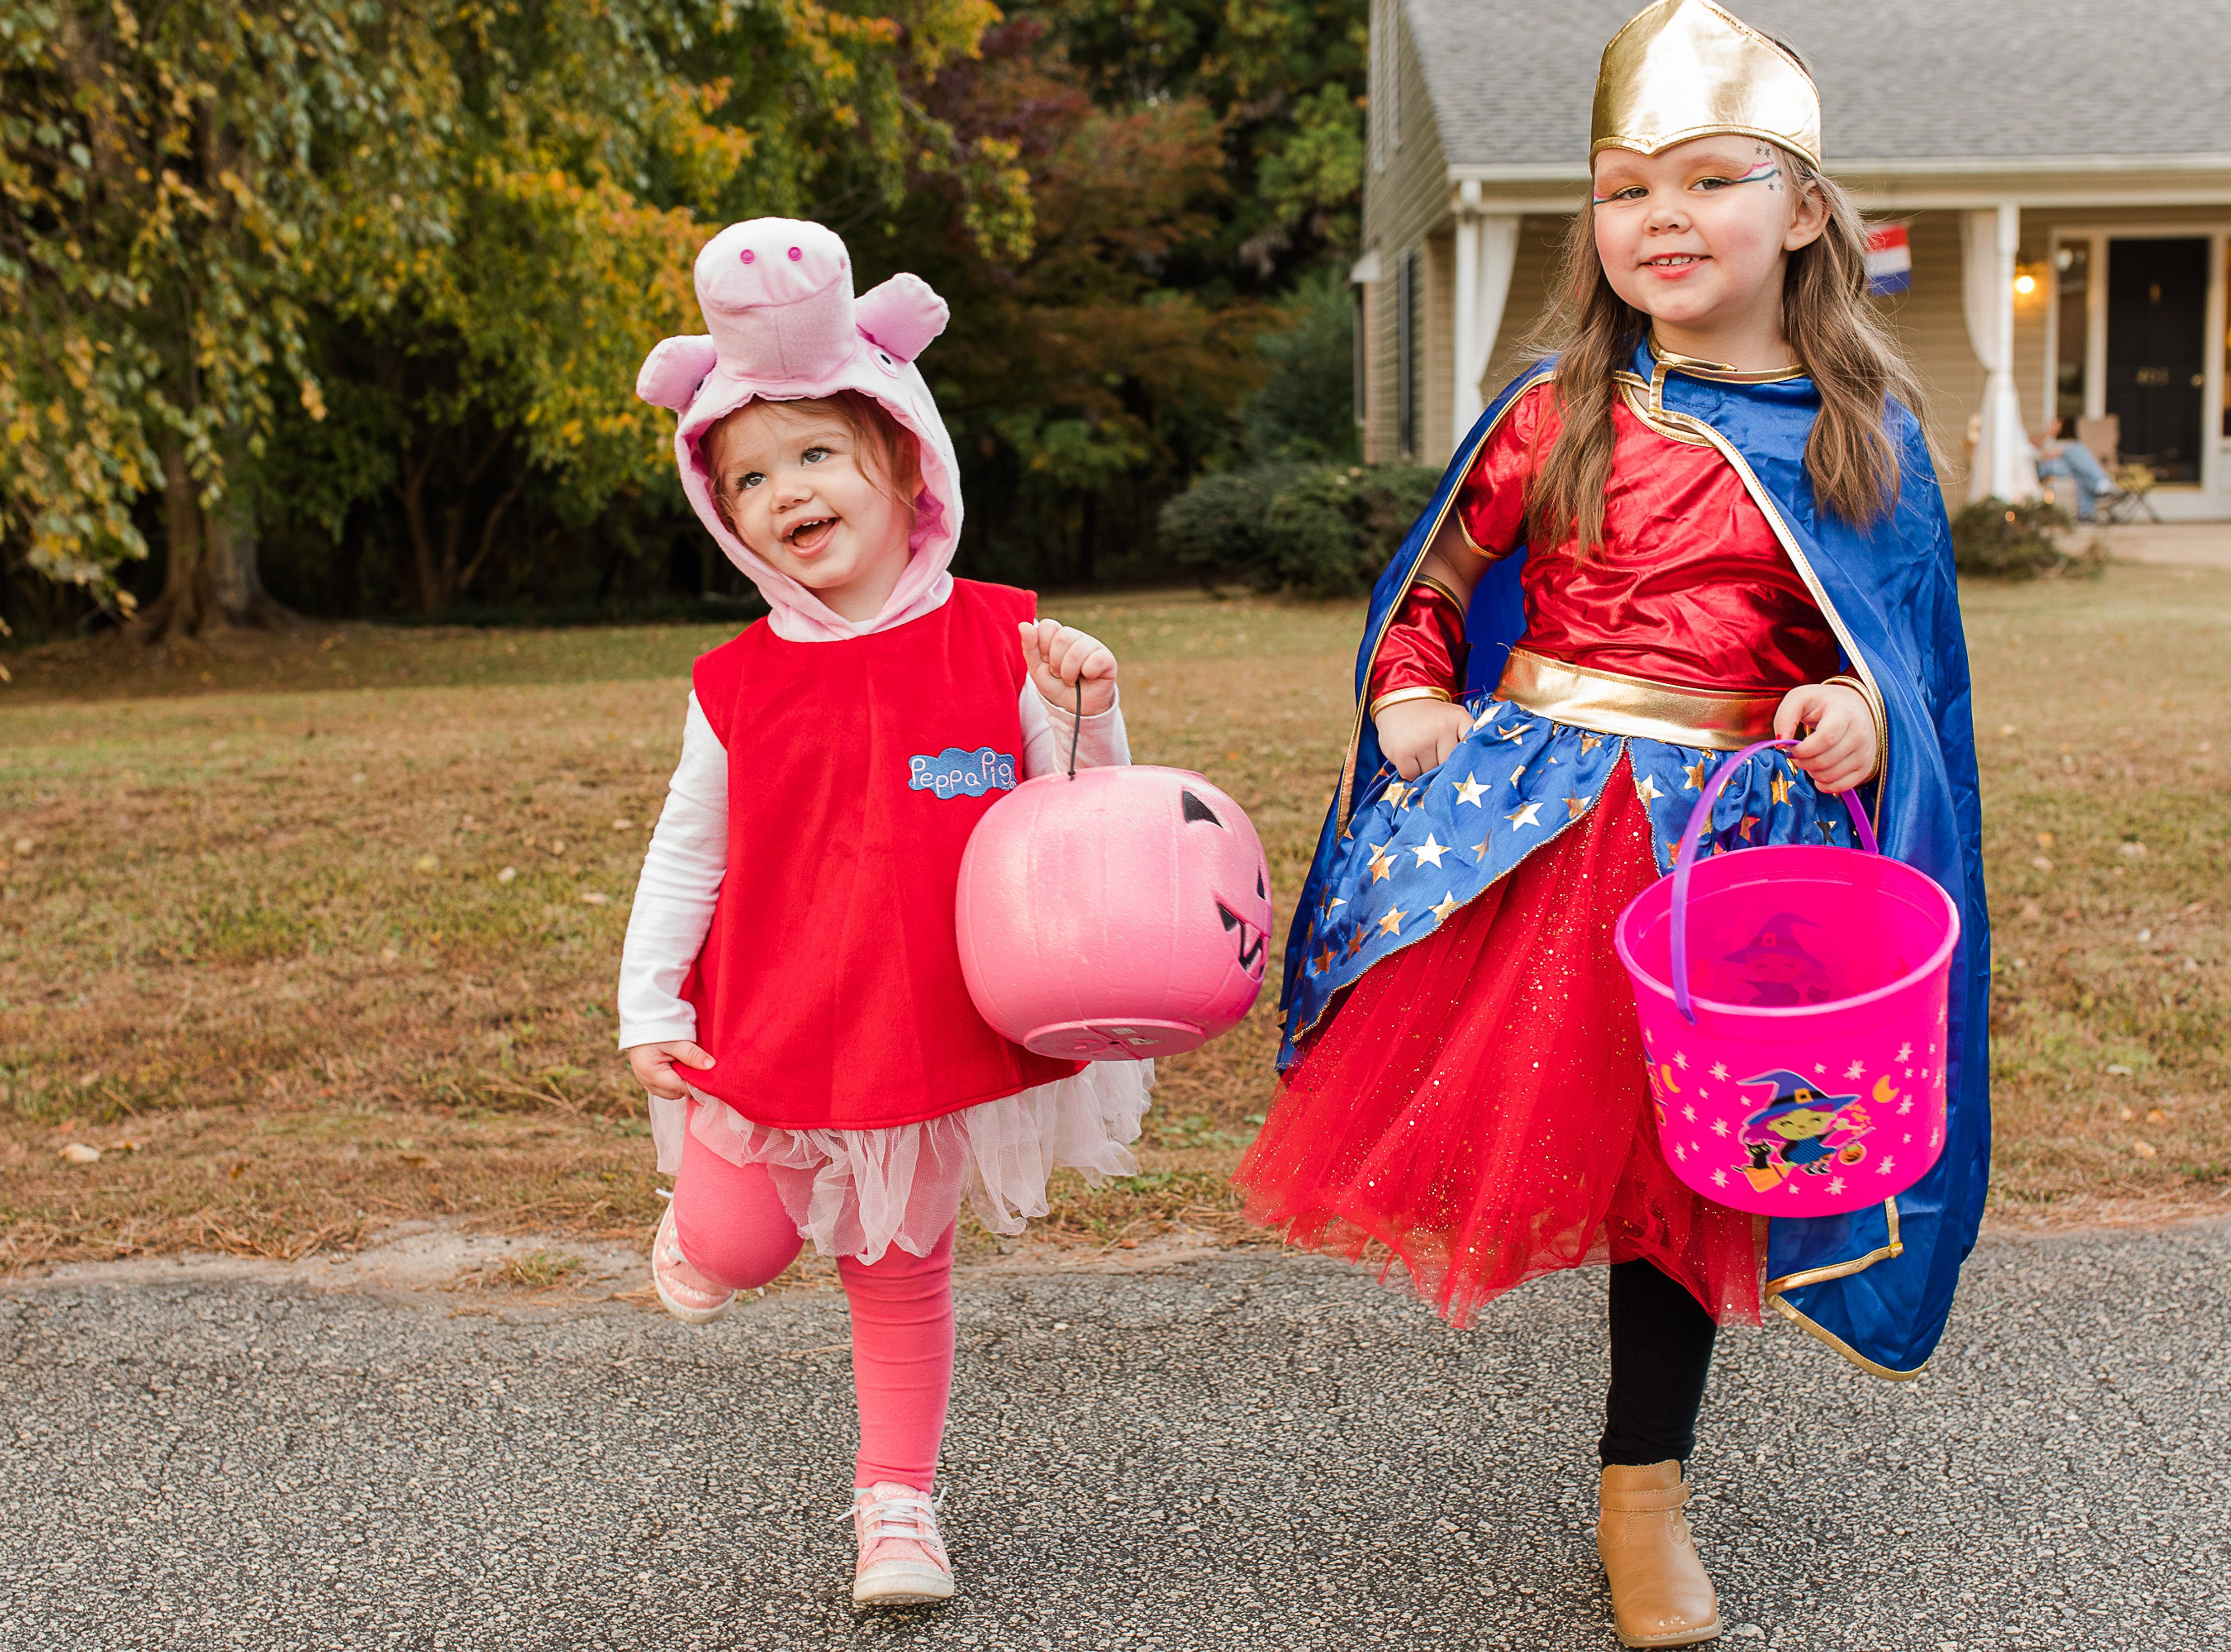 Two year old Lila and four year old Audrie Harbin enjoy trick-or-treating in the Cobb's Glenn subdivision in Anderson Wednesday, October 31, 2018.